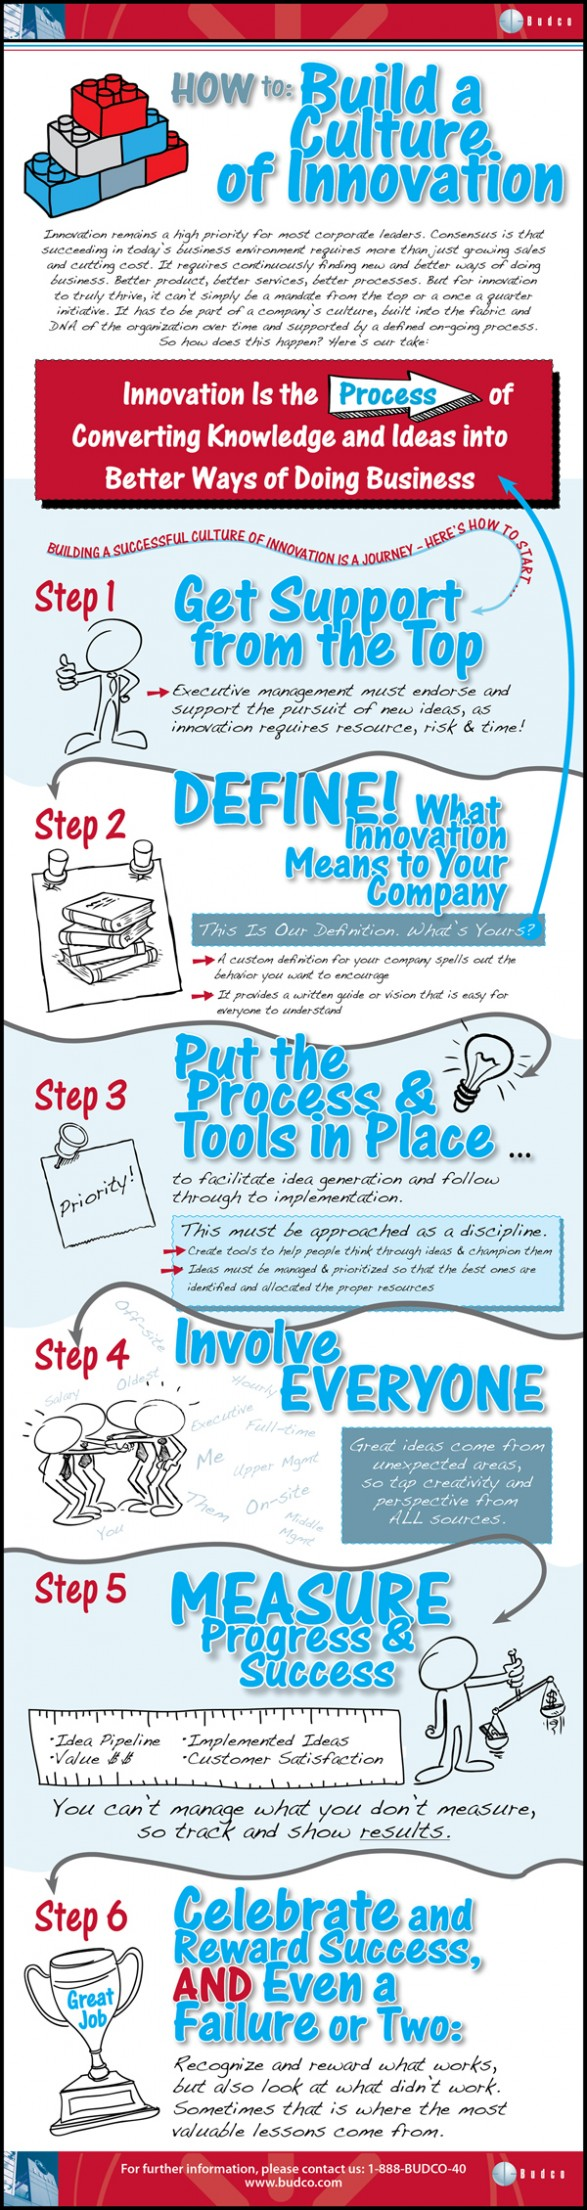 building-a-culture-of-innovation_50a115b45c9c6_w587